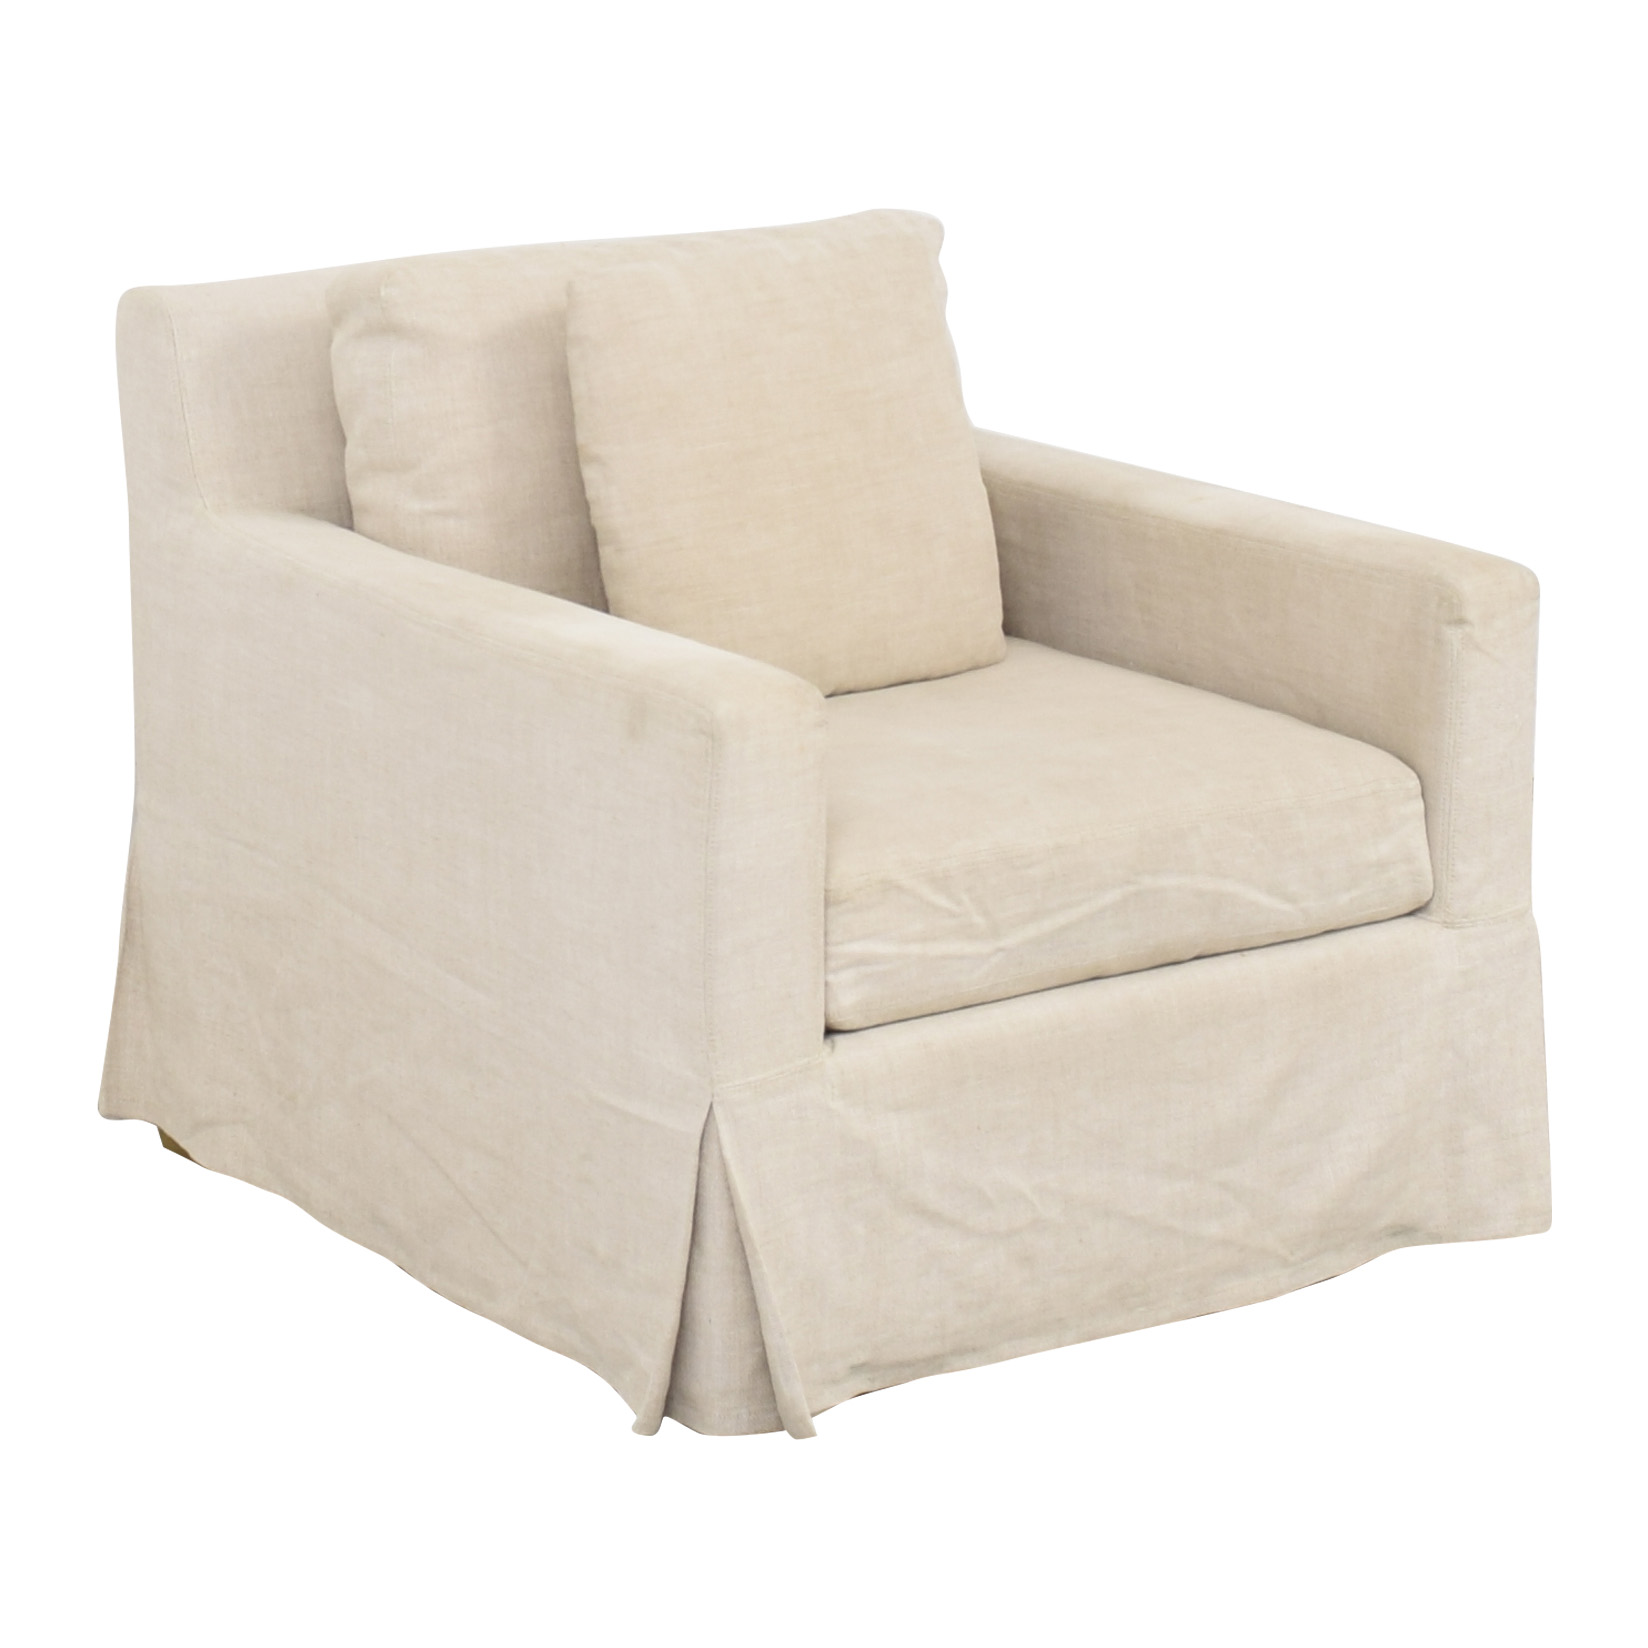 Restoration Hardware Restoration Hardware Belgian Linen Track Arm Slipcovered Chair on sale